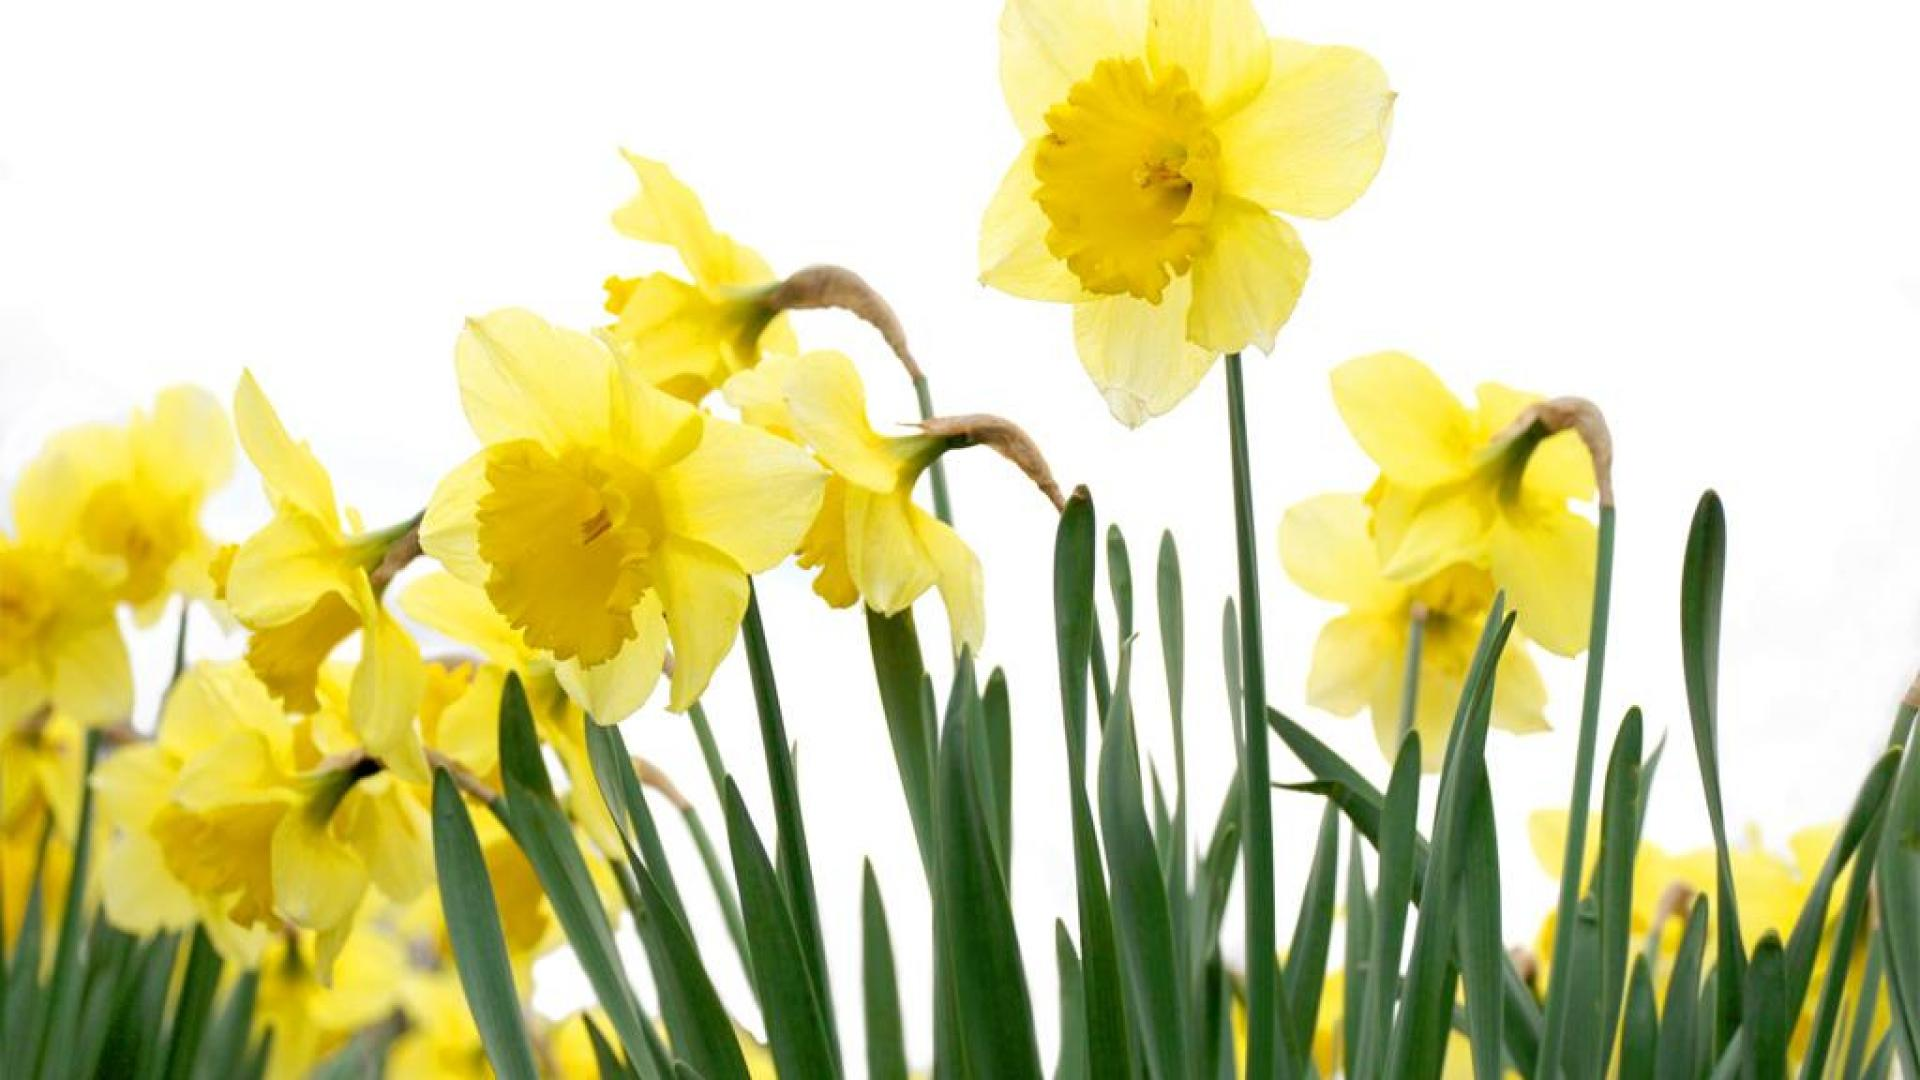 spring daffodil - wallpaper, high definition, high quality, widescreen